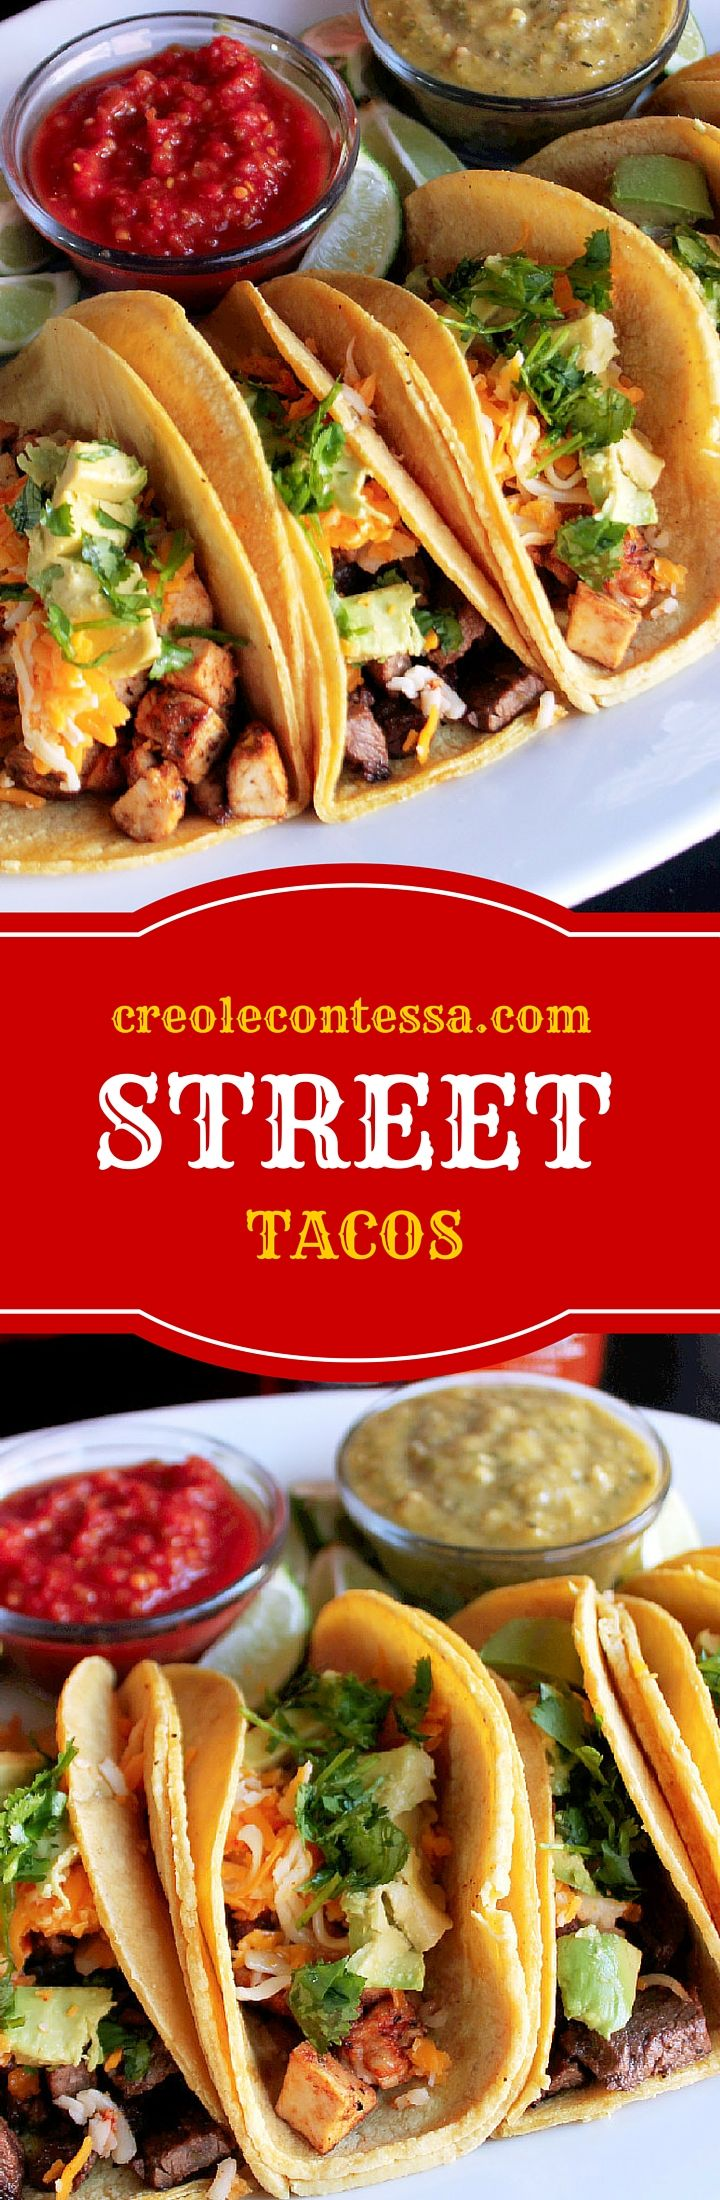 506 best mexican food recipes images on pinterest recipes rezepte street tacos creole contessa forumfinder Gallery